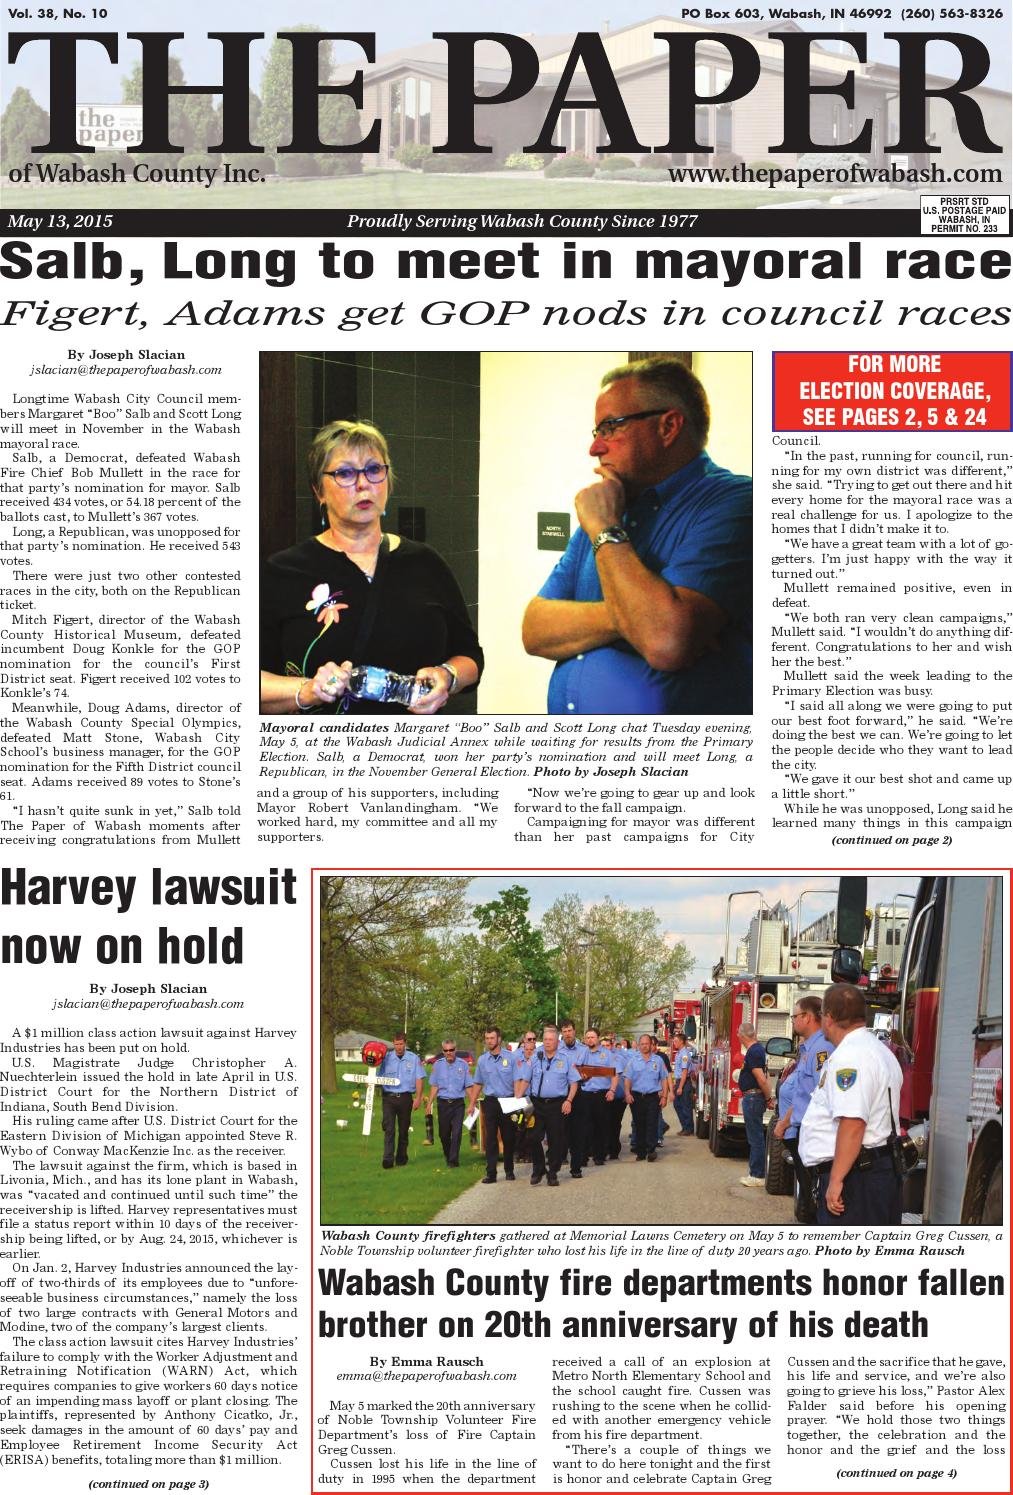 Indiana wabash county lagro - The Paper Of Wabash County May 13 2015 Issue By The Paper Of Wabash County Issuu